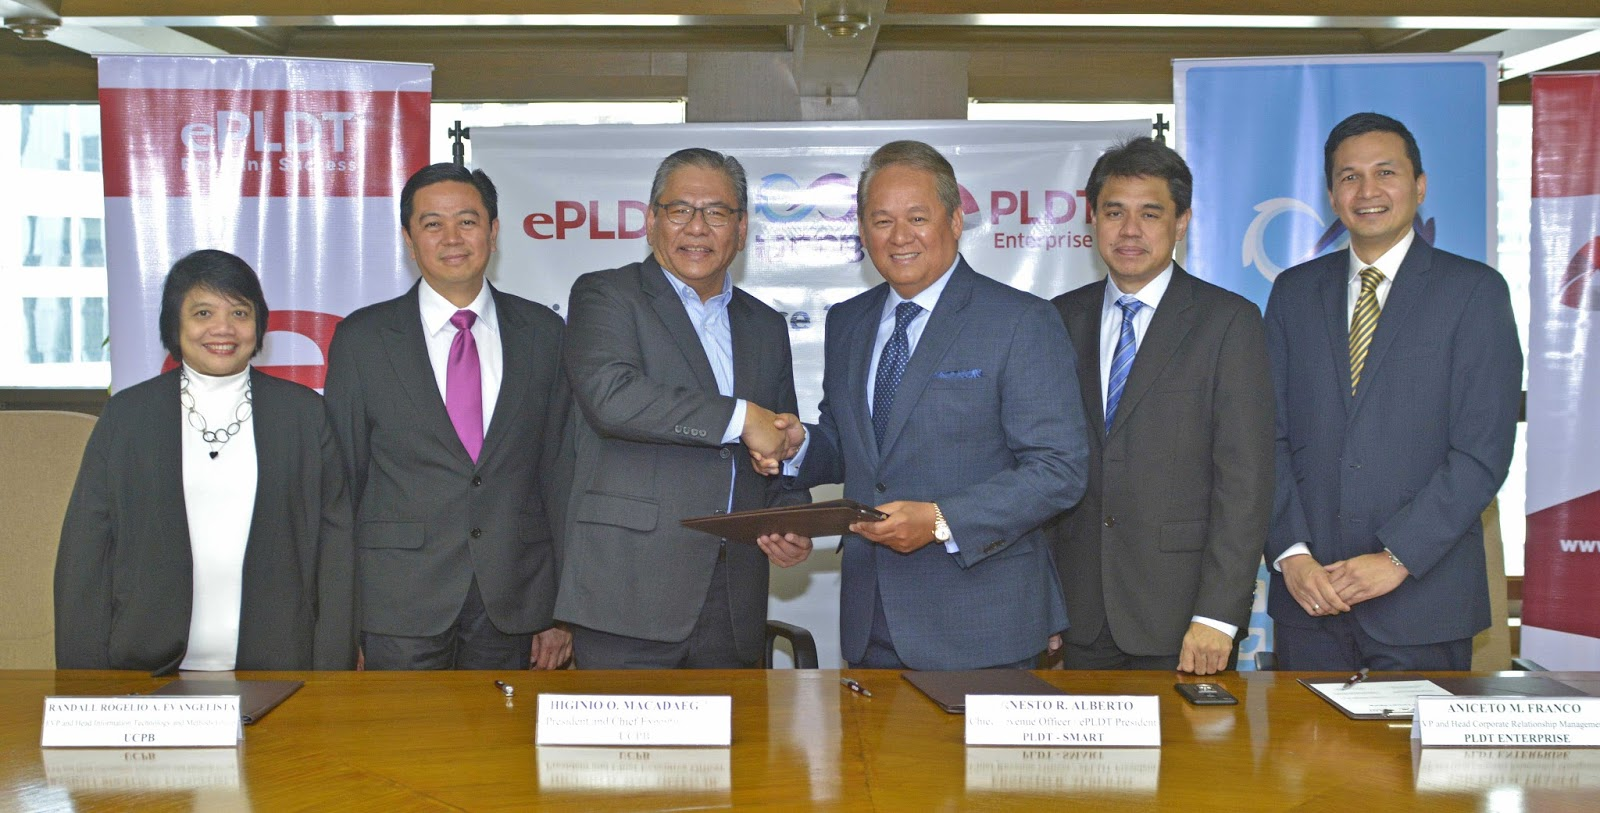 UCPB partners with ePLDT, PLDT Enterprise for its adoption of Microsoft Office 365